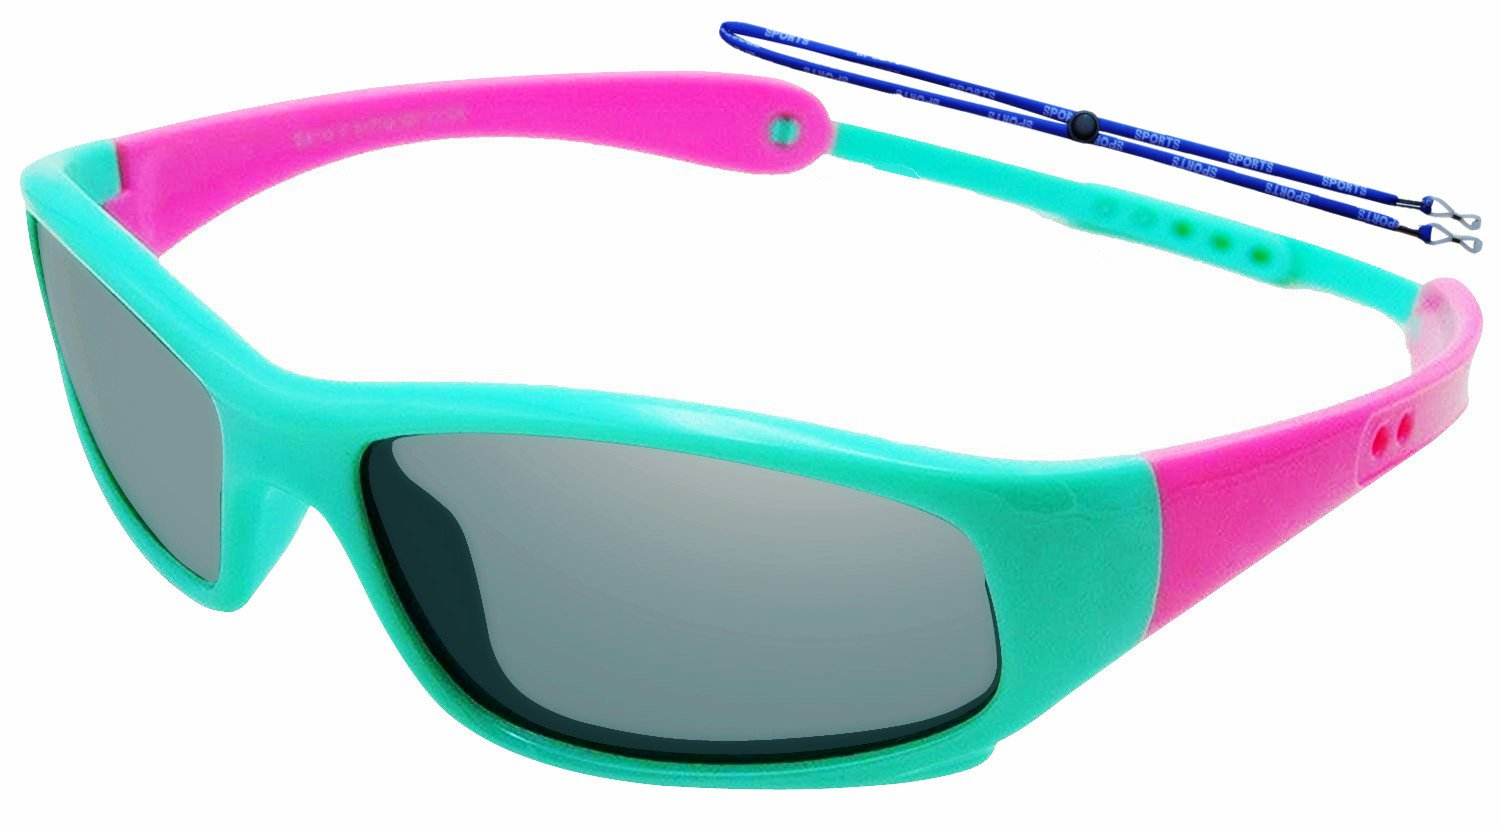 39d4dd76e0 COOLSOME Flexible Rubber Kids Polarized UV Protection Sunglasses with  Straps for Boys Girls 2-7